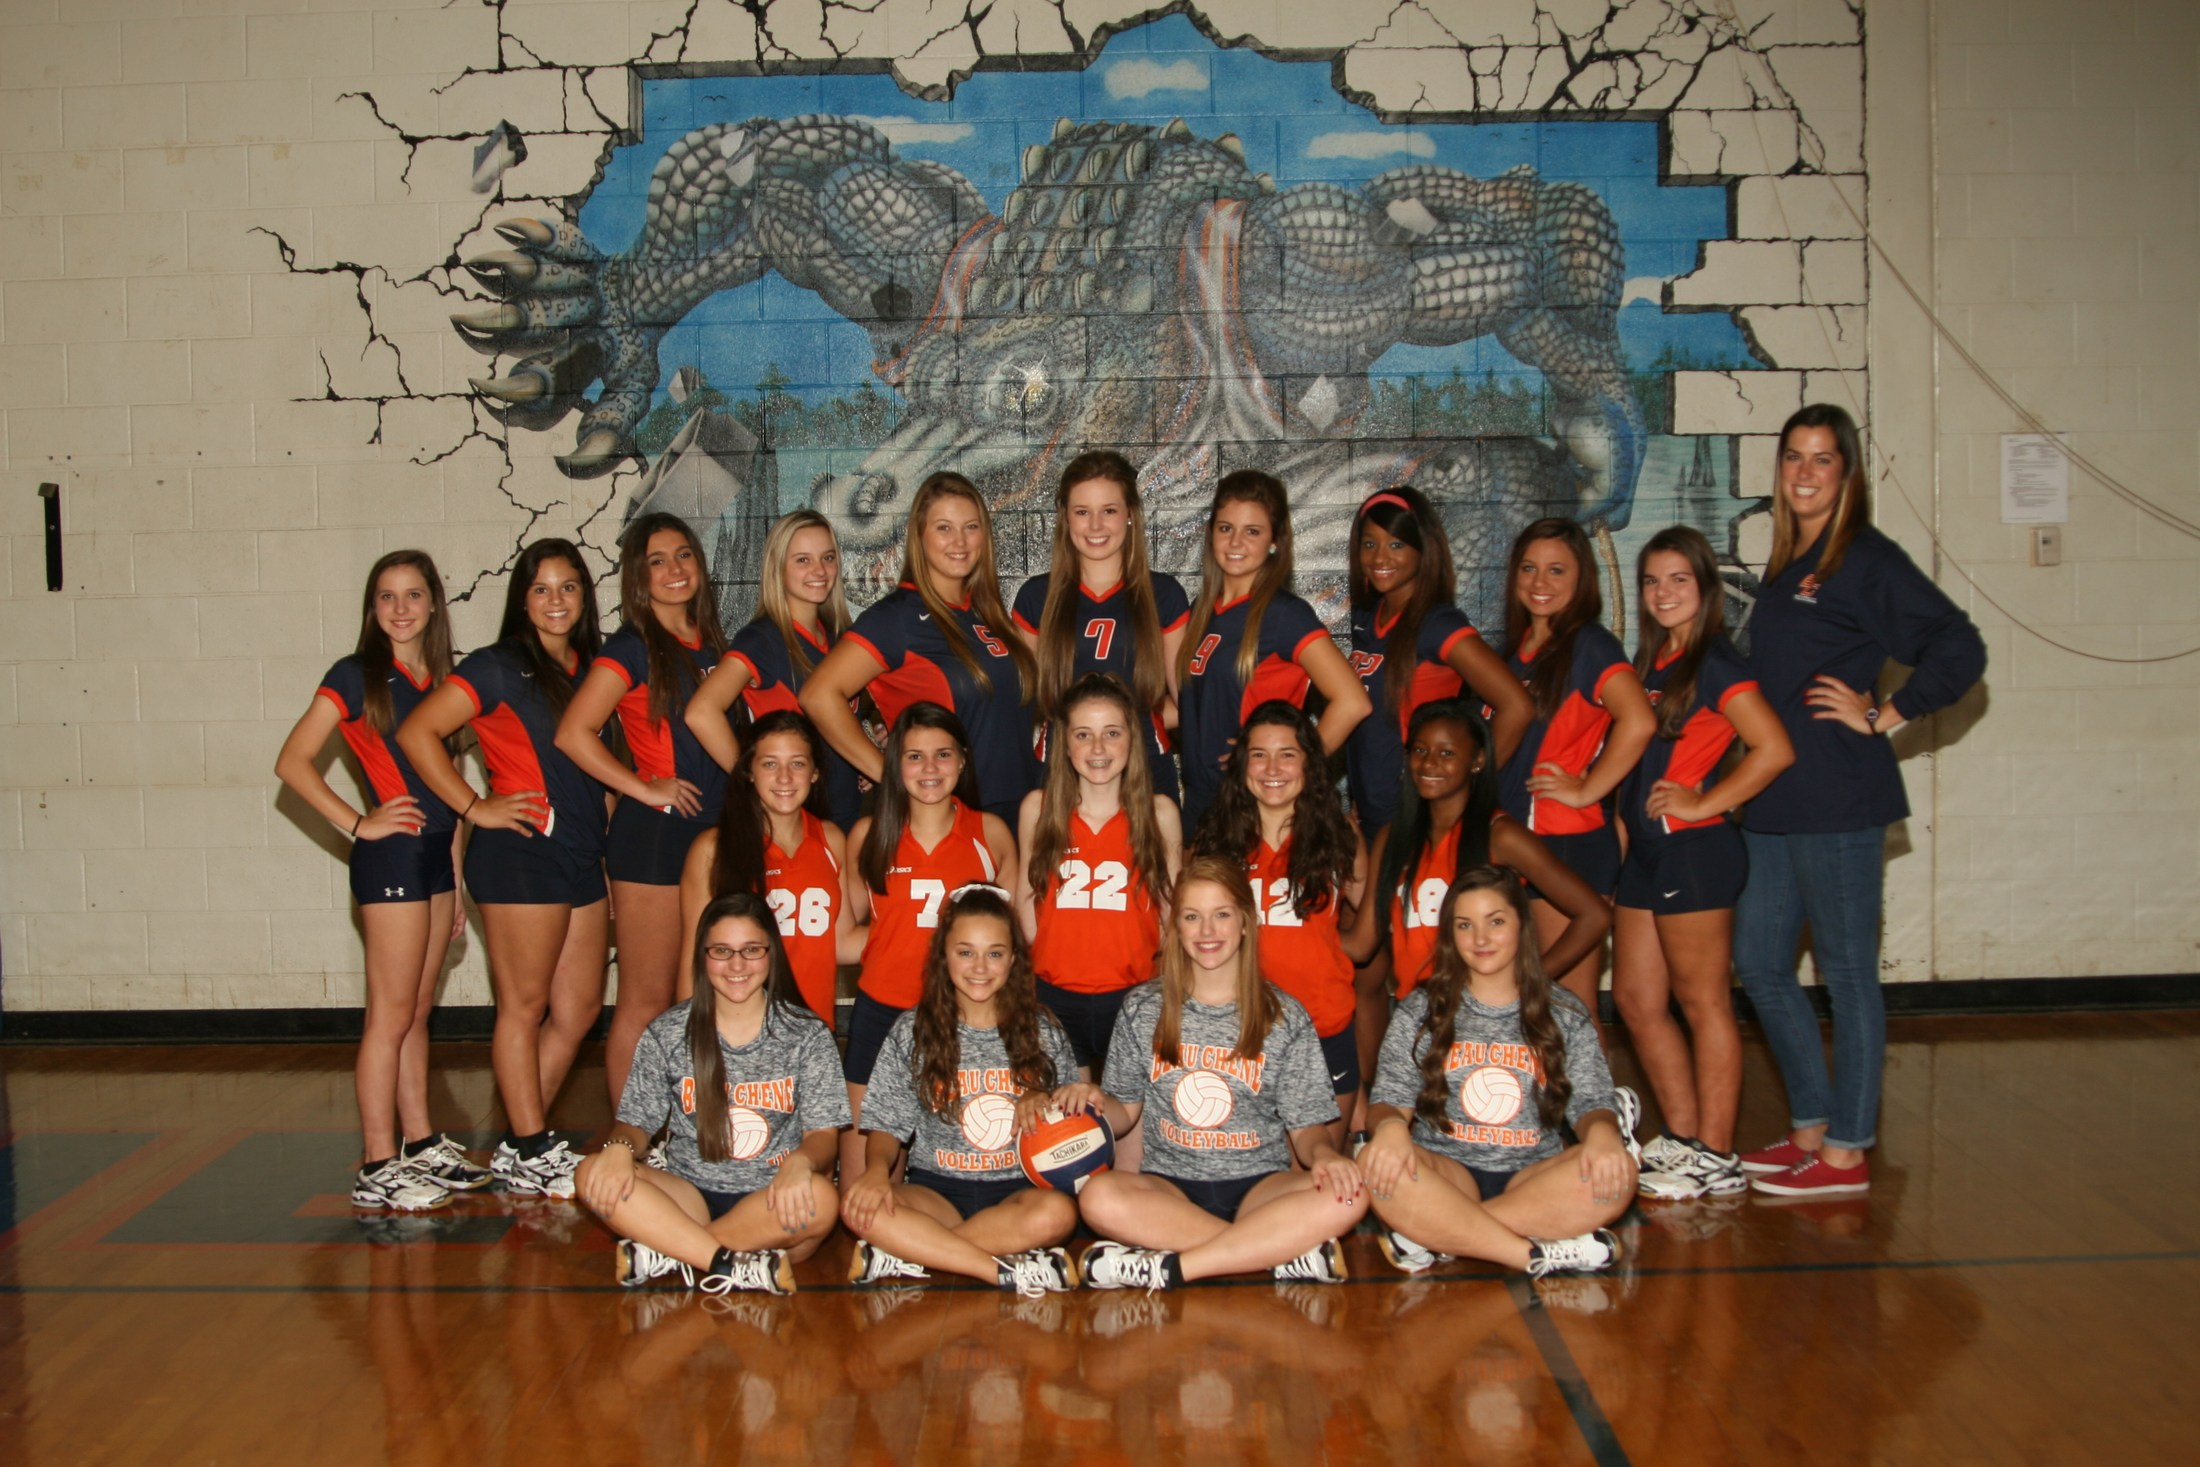 BCHS Volleyball Team - 2016-2017